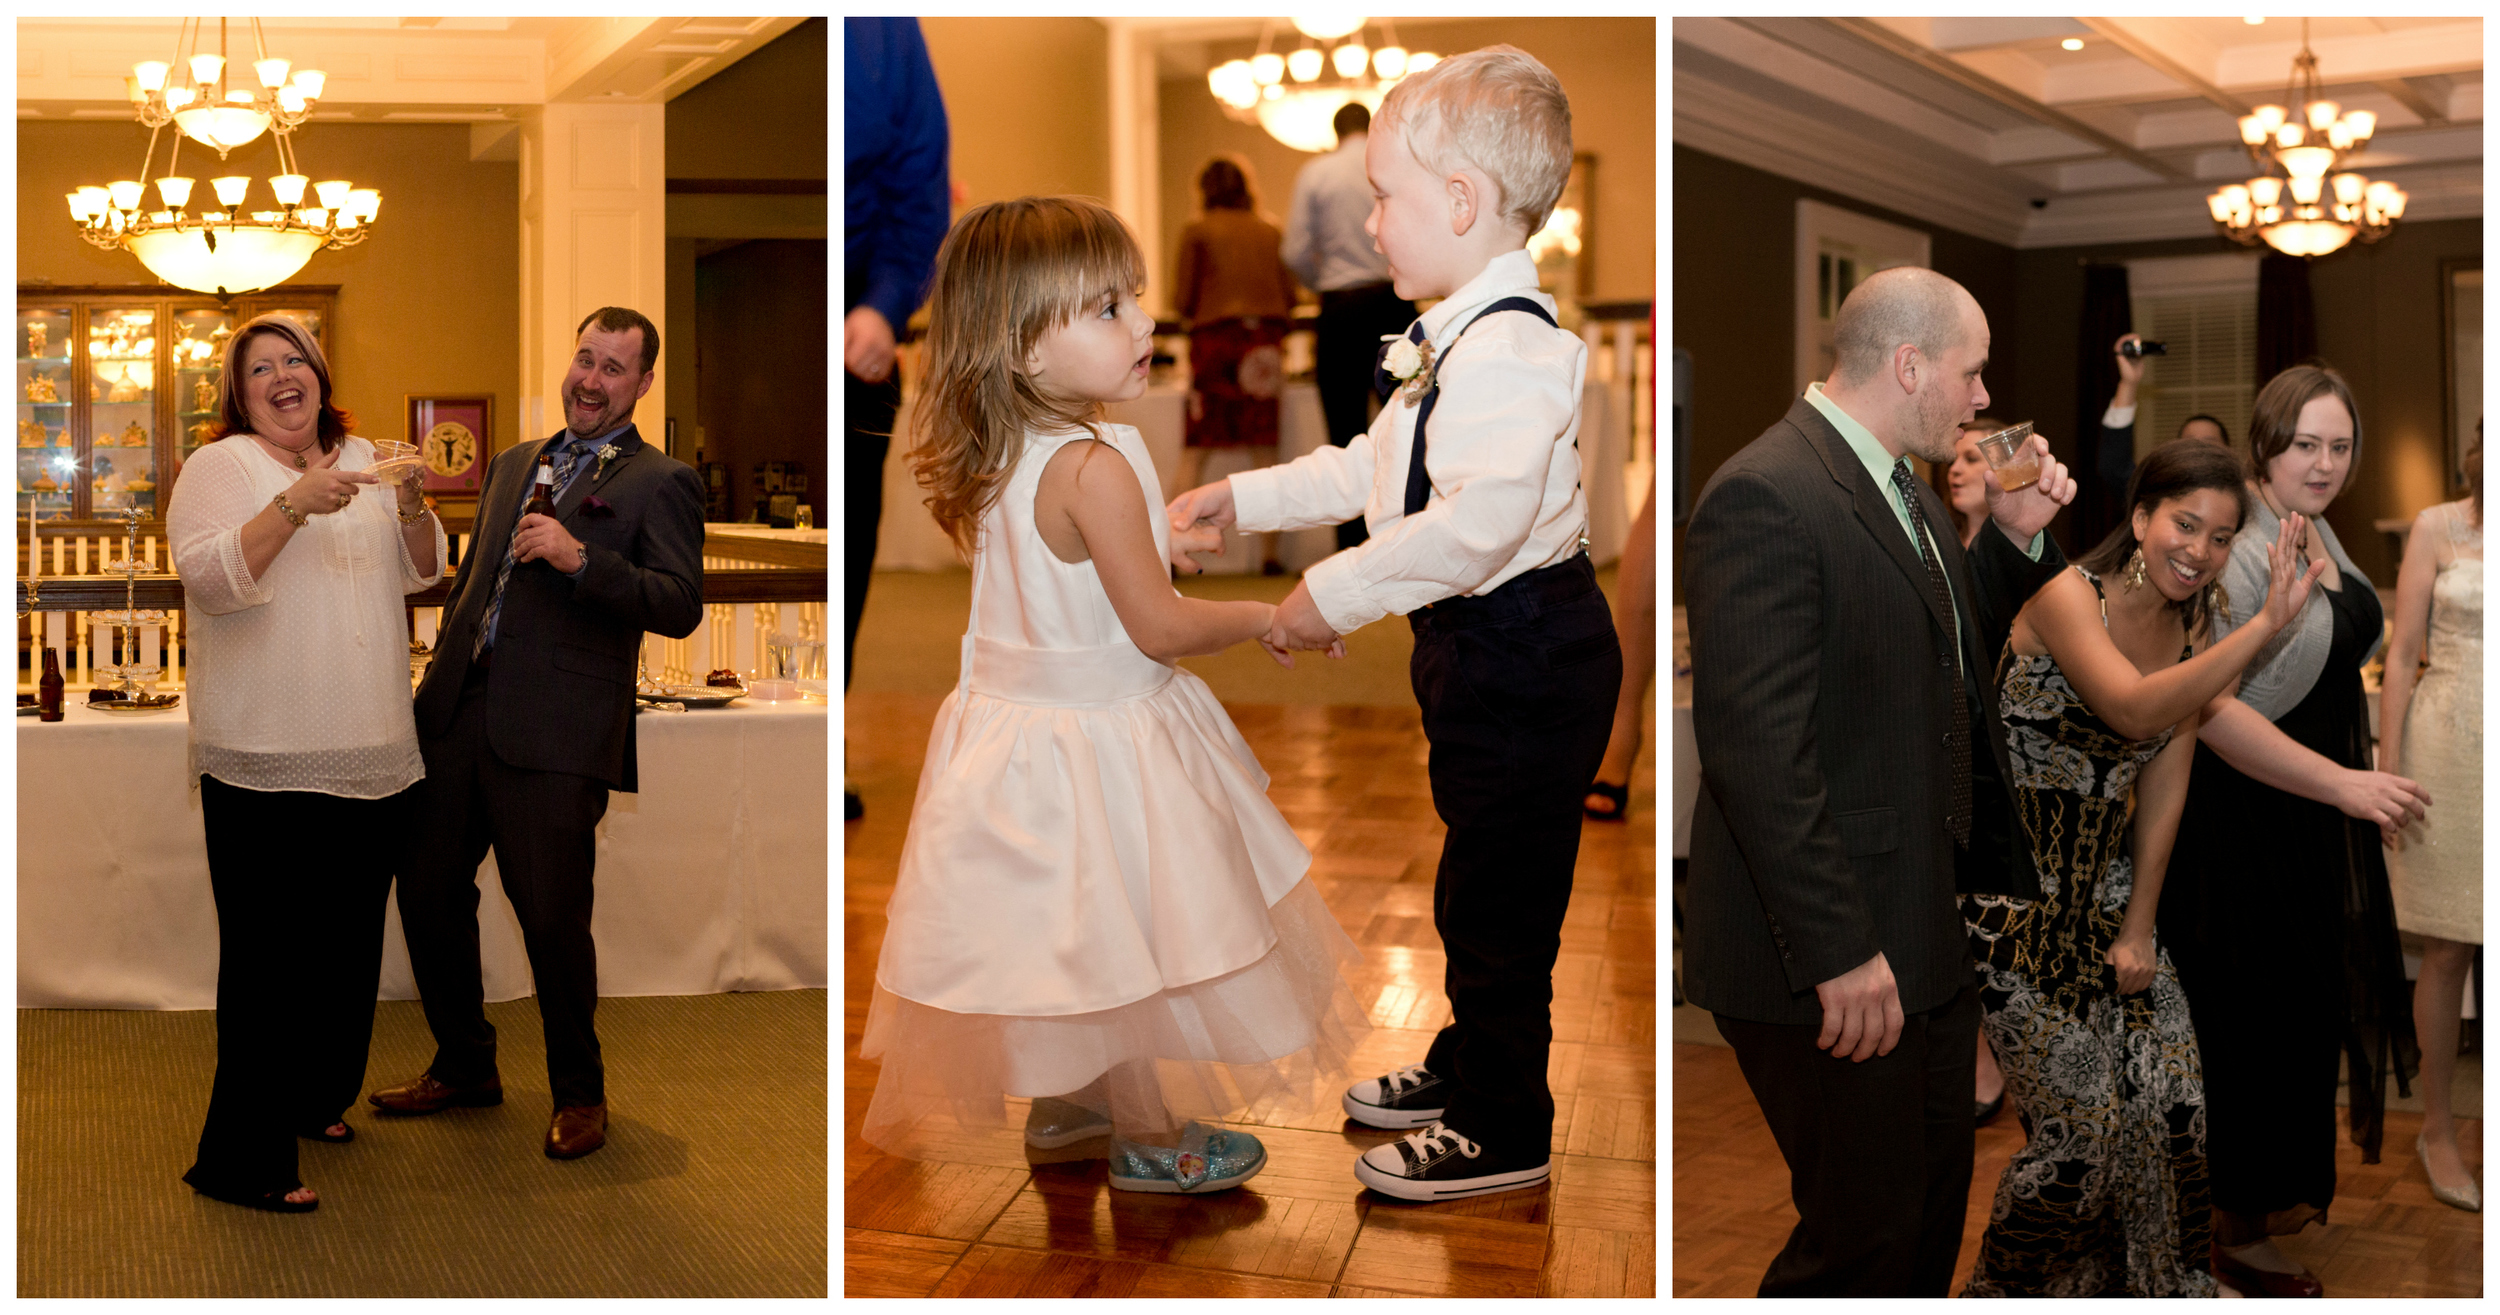 cute kids and adults having fun at wedding reception